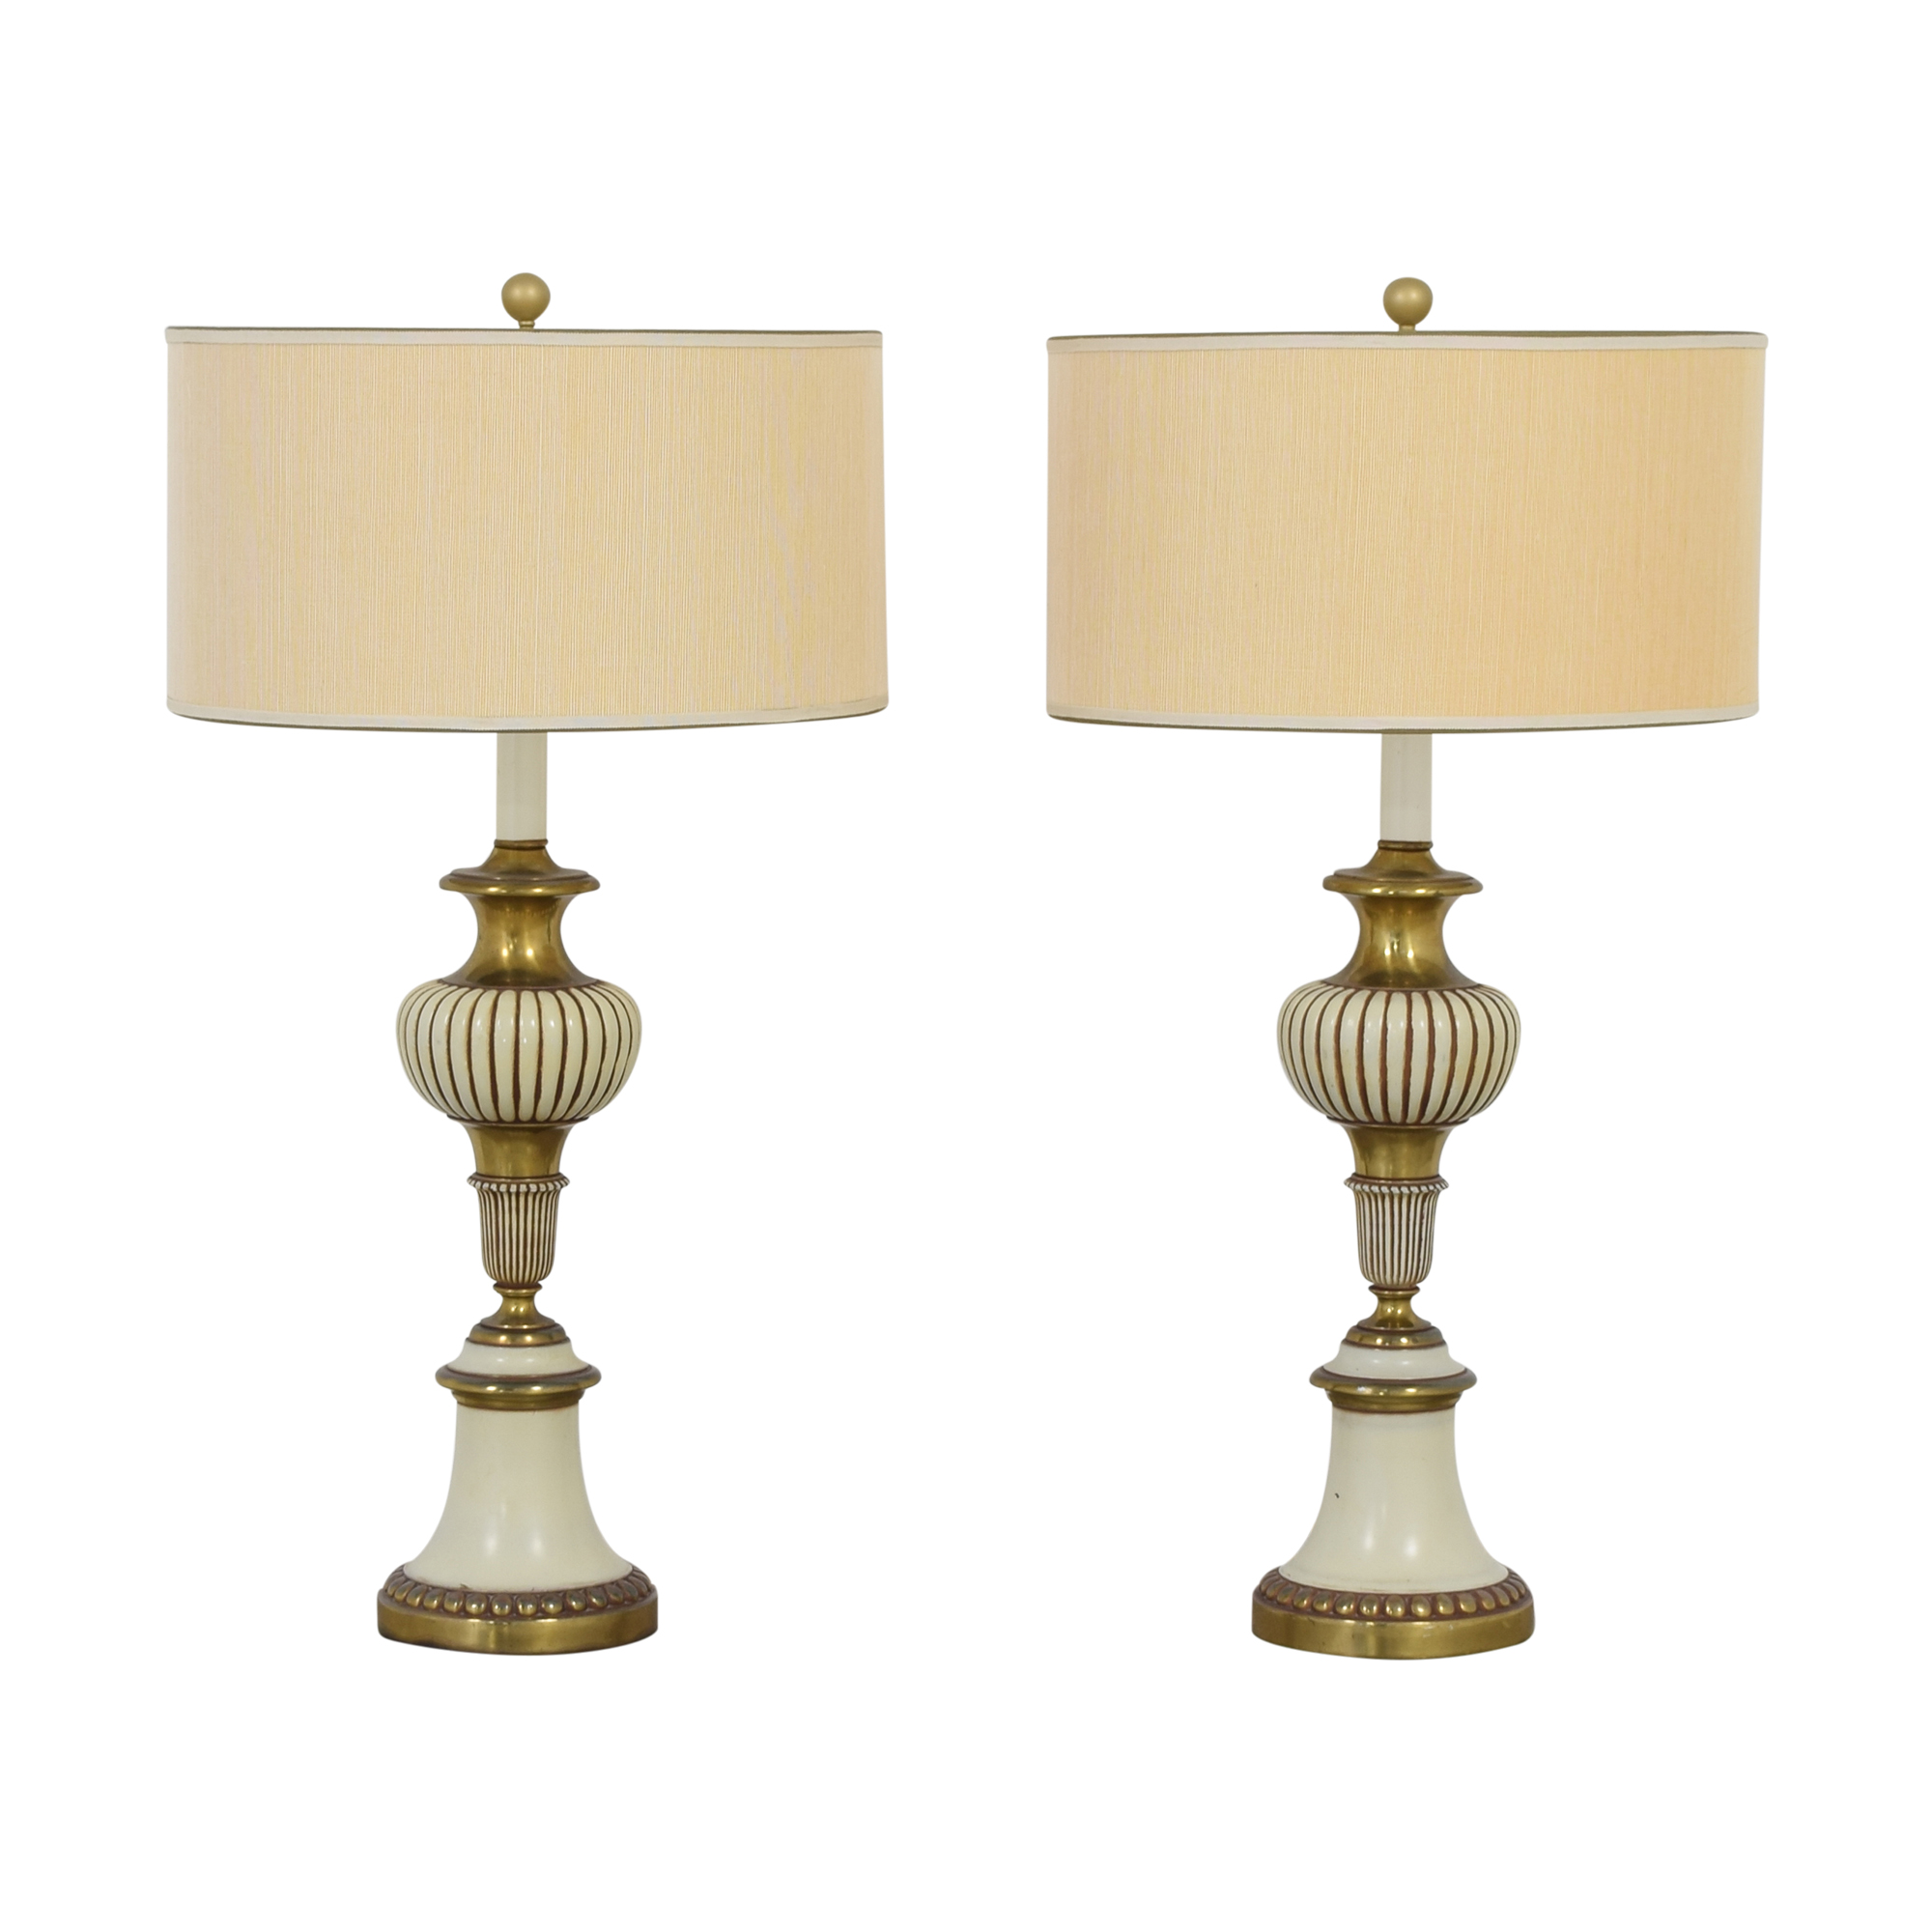 Kimball Kimball Vintage Table Lamps ct